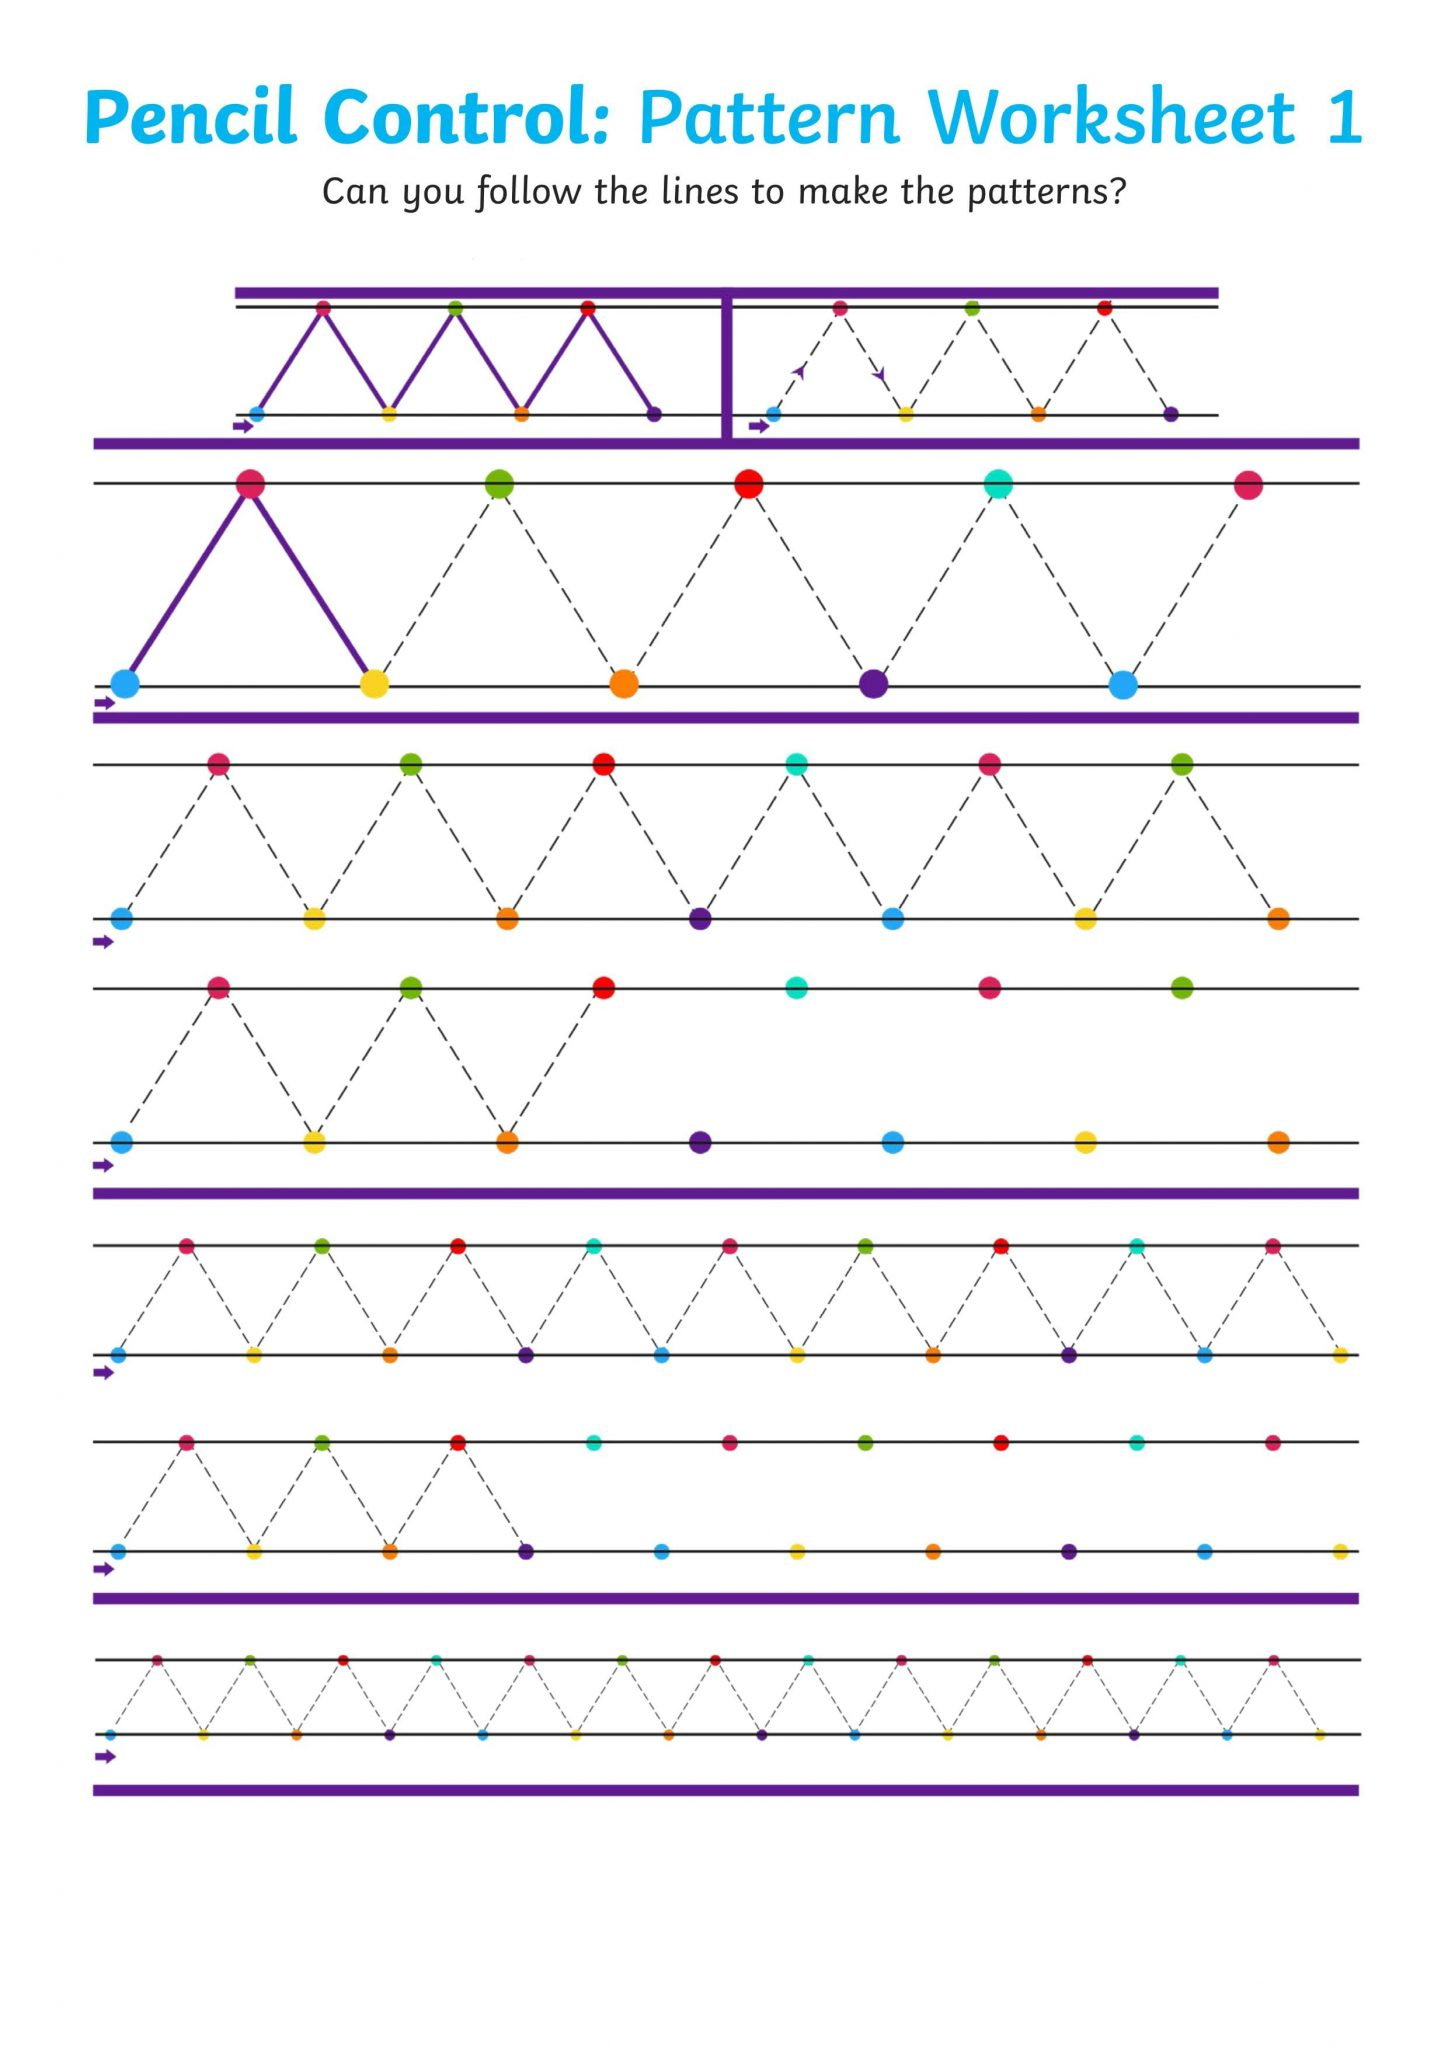 Pencil Control Pattern Worksheet For Children